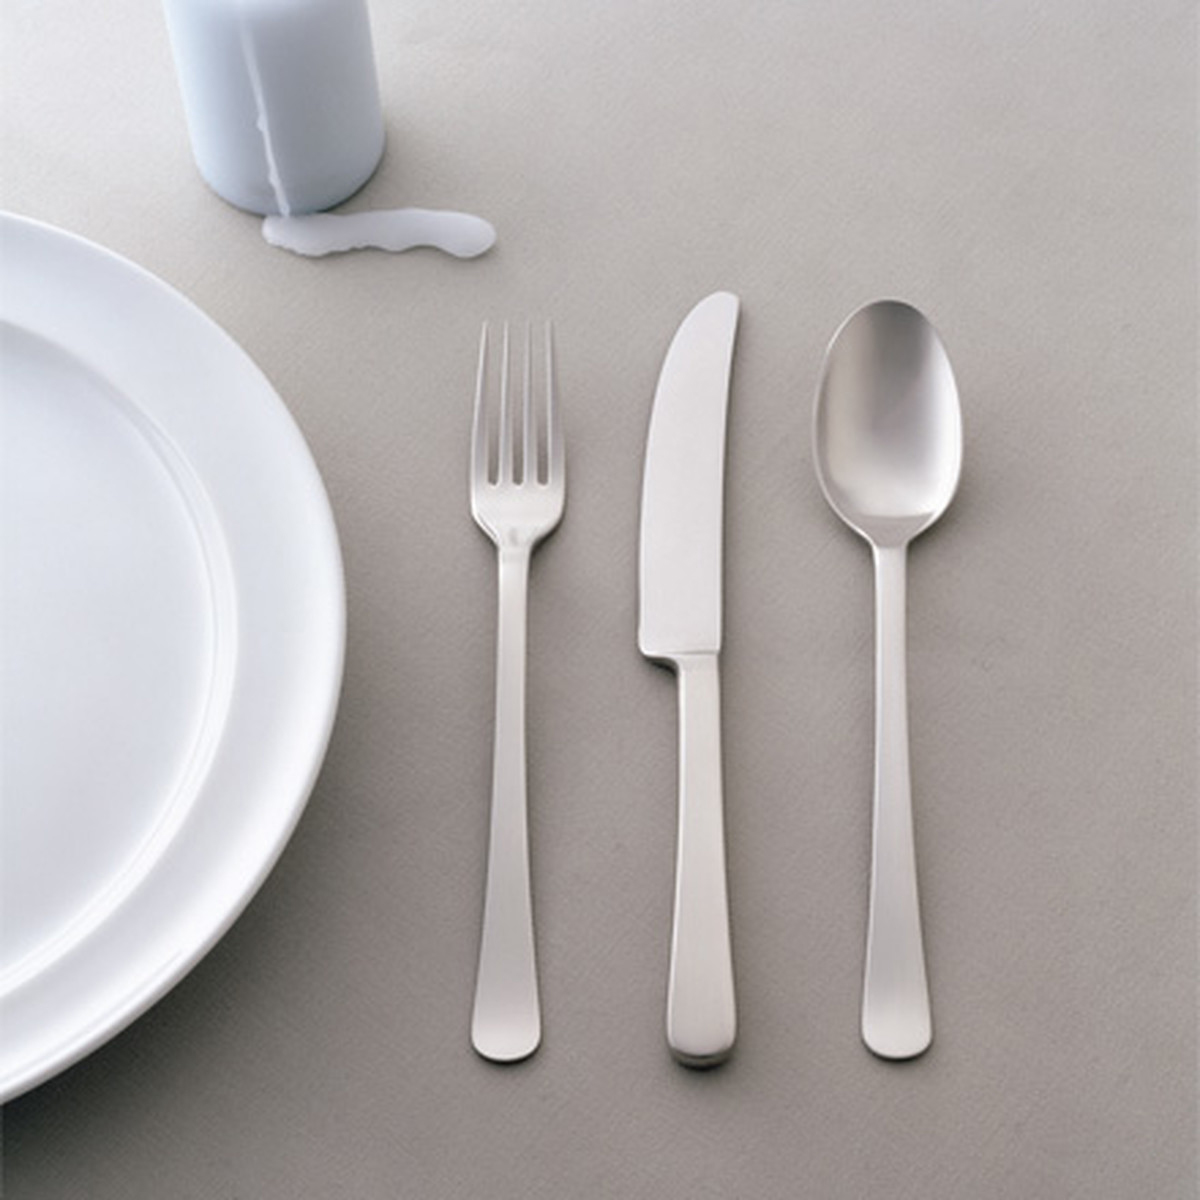 georg jensen copenhagen cutlery matte stainless steel 1. Black Bedroom Furniture Sets. Home Design Ideas